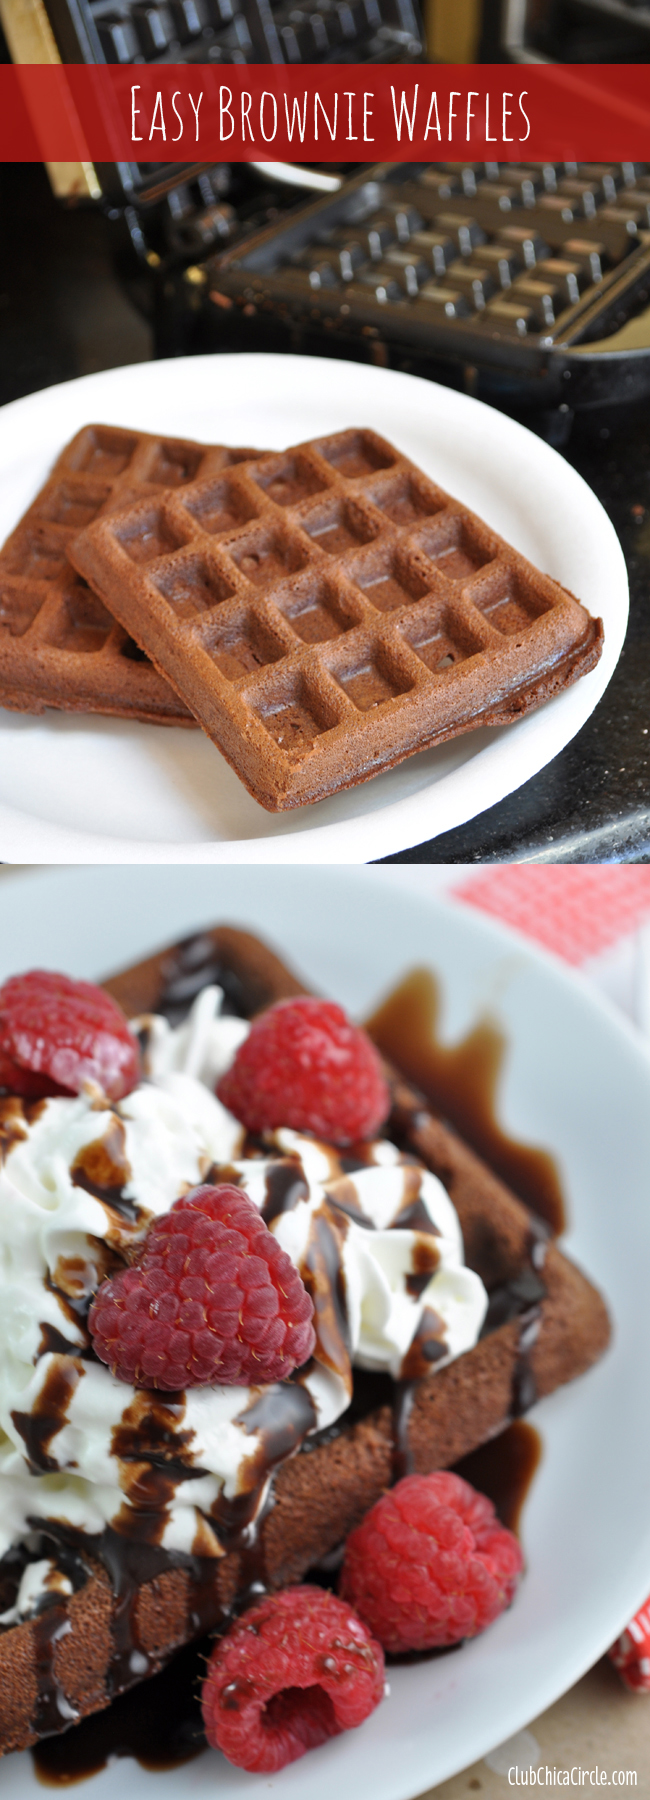 Easy Brownie Waffle Dessert | Club Chica Circle - where crafty is ...